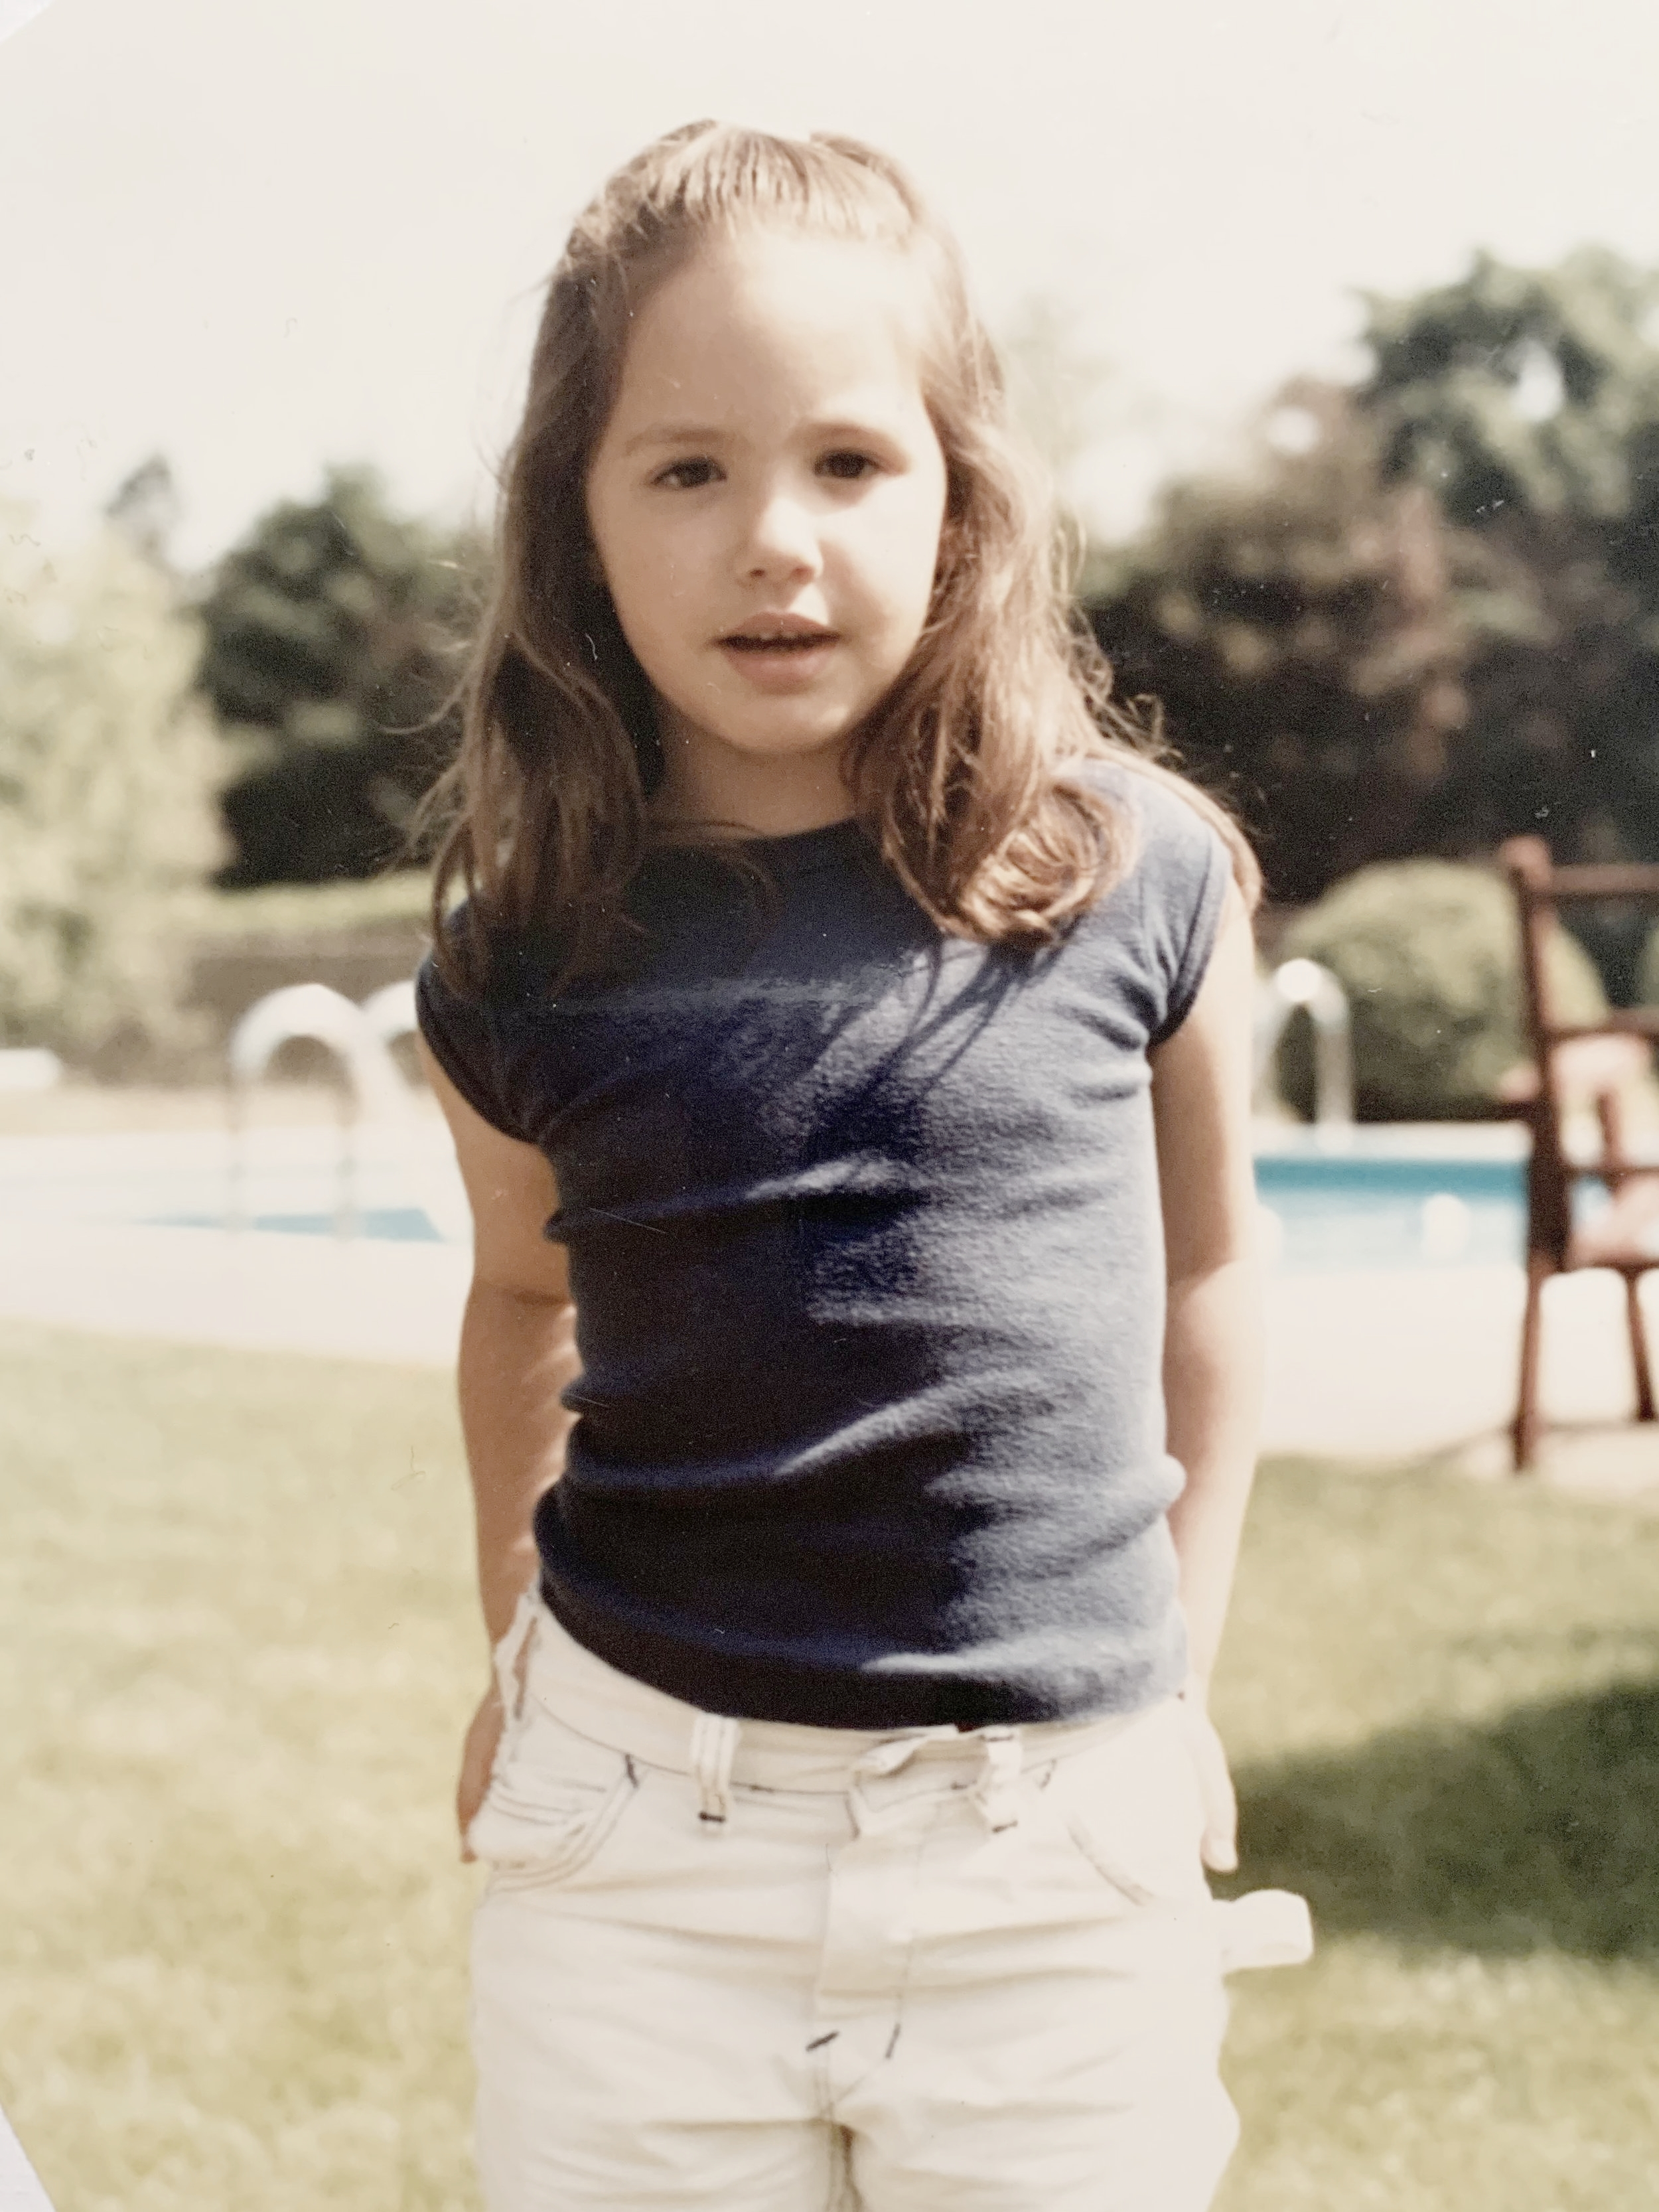 I was five-years-old in this picture rocking my white jeans. I thought I was fat and prayed that God would make me thin while I was sleeping.